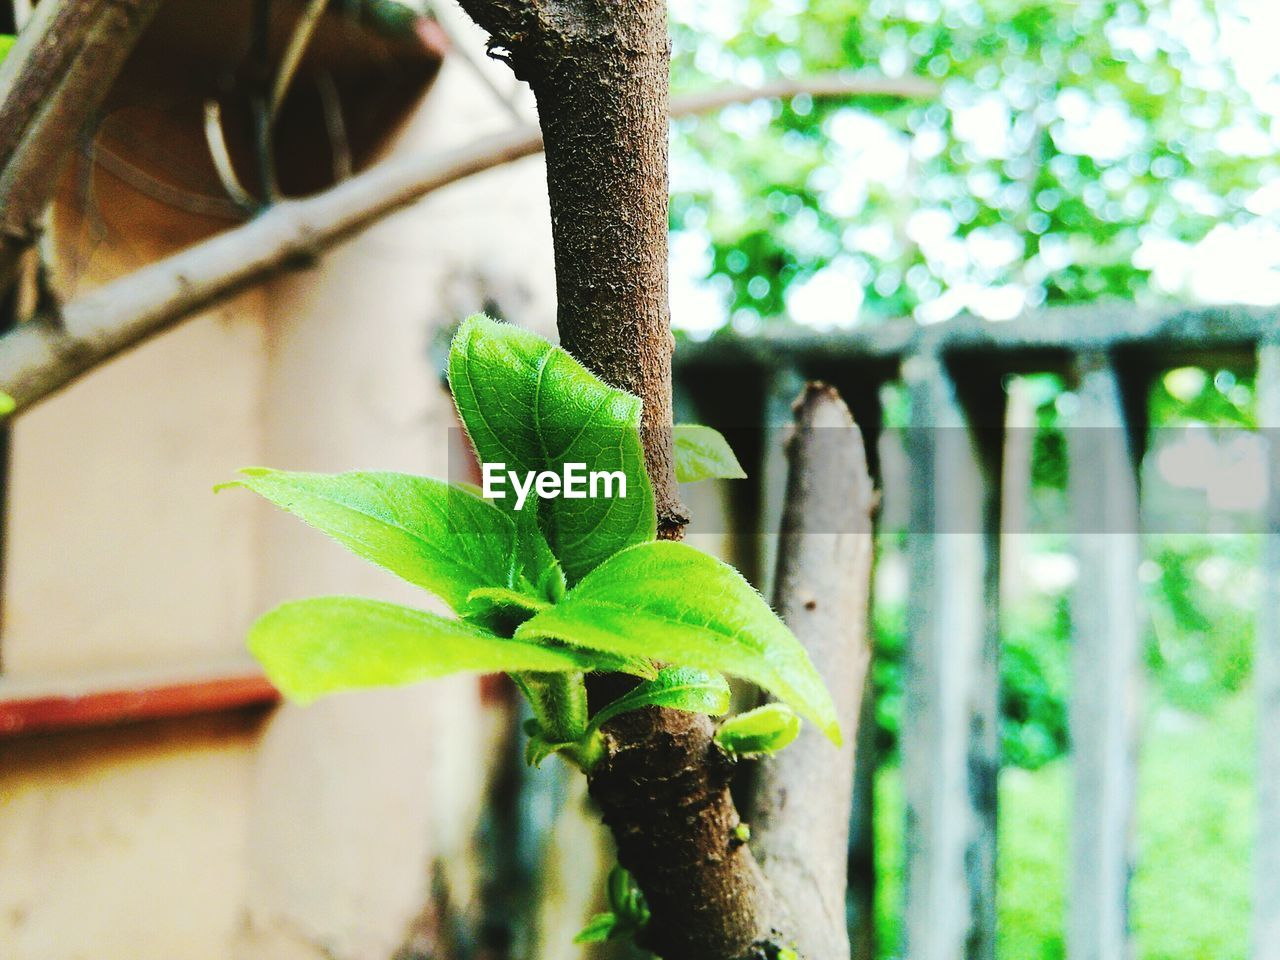 green color, leaf, growth, plant, nature, focus on foreground, one animal, no people, day, close-up, animals in the wild, animal themes, outdoors, beauty in nature, tree, freshness